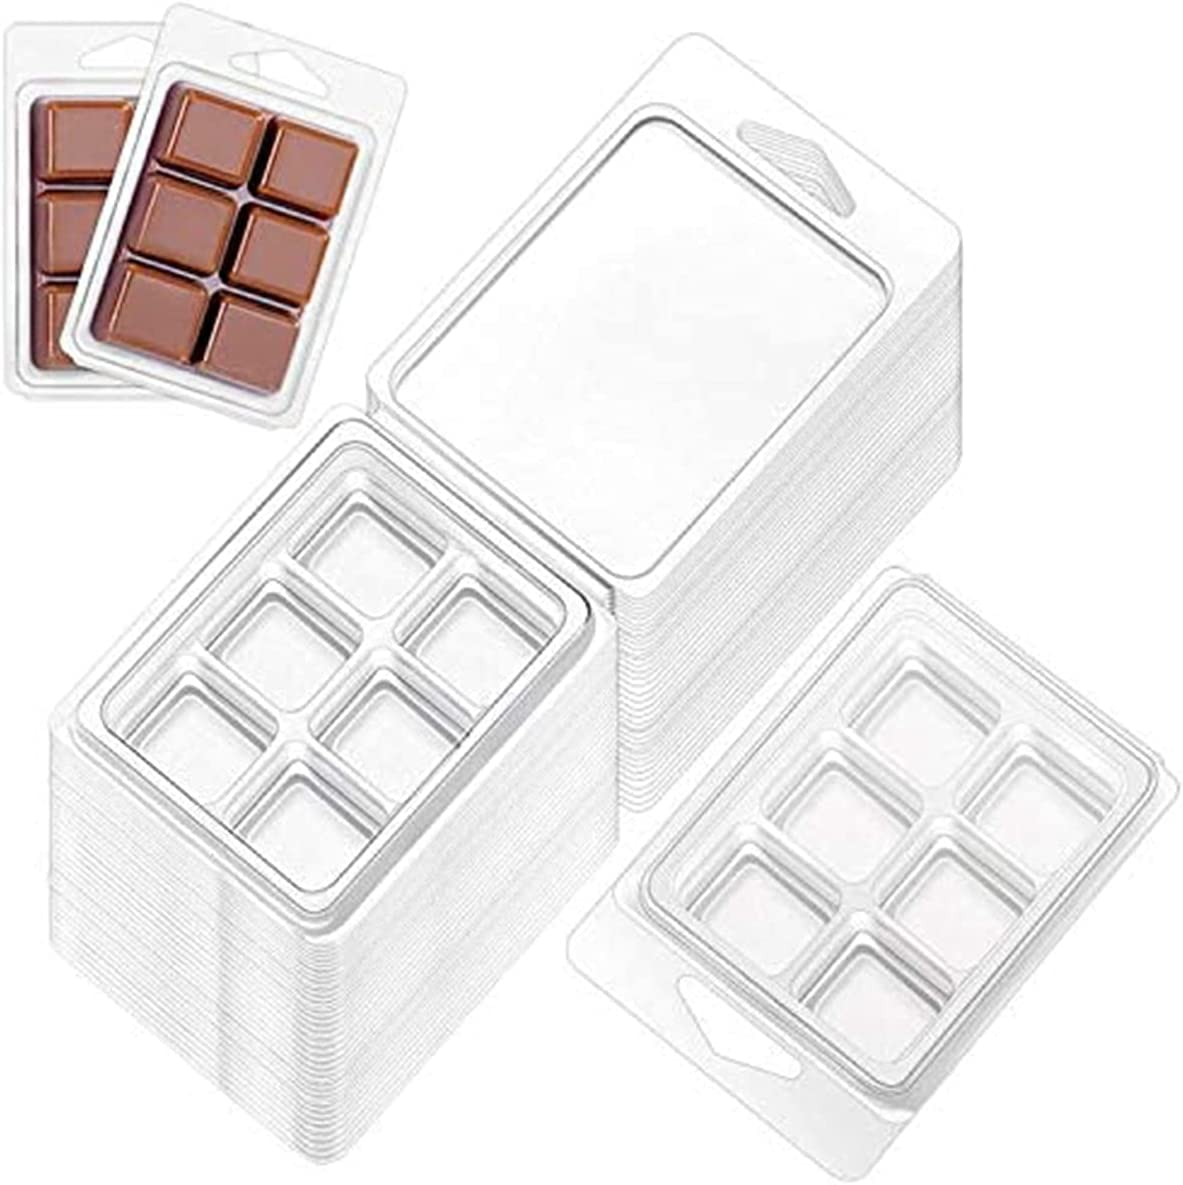 Wax Melt Max 66% OFF Mold Clamshells Molds Square Cavity Clear Max 41% OFF 6